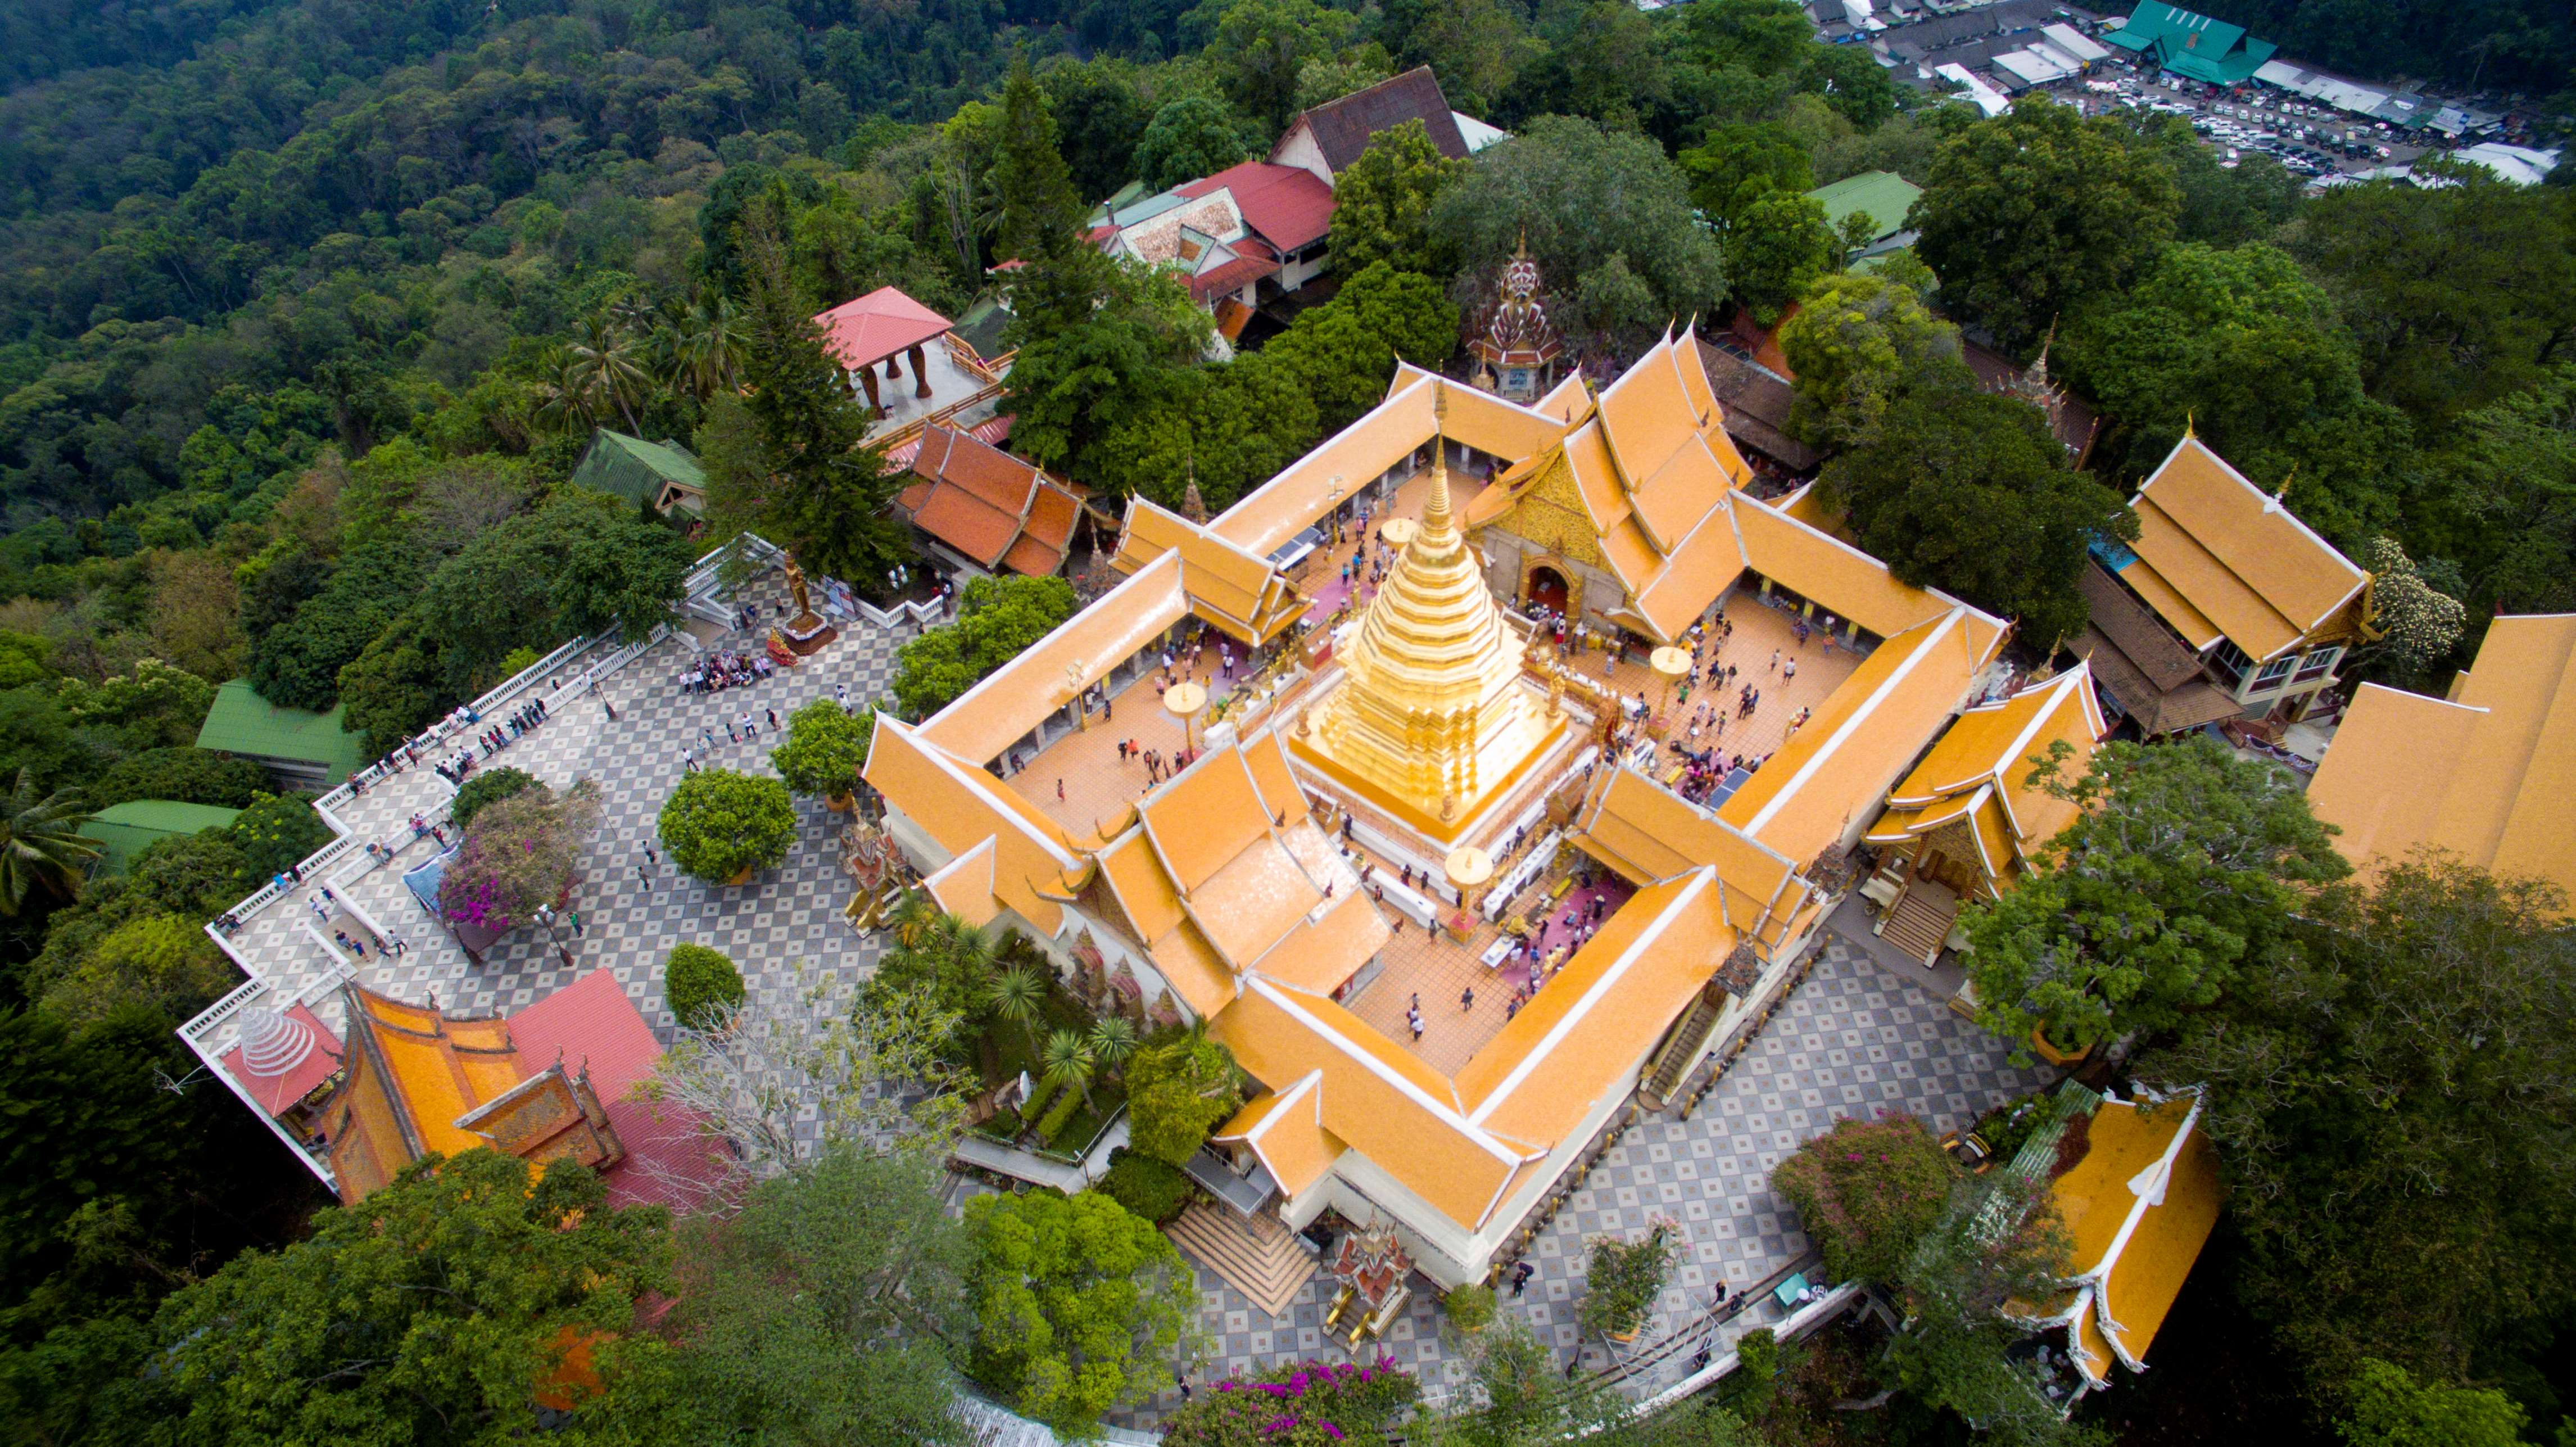 Slide 16 of 73: CHIANG MAI, CHIANG MAI DISTRICT, THAILAND - 2017/04/15: (EDITORS NOTE: Image has been created using a drone.) Aerial drone view over Wat That Doi Suthep in Chiang Mai. It is a buddhist temple located on a hill overlooking the city.